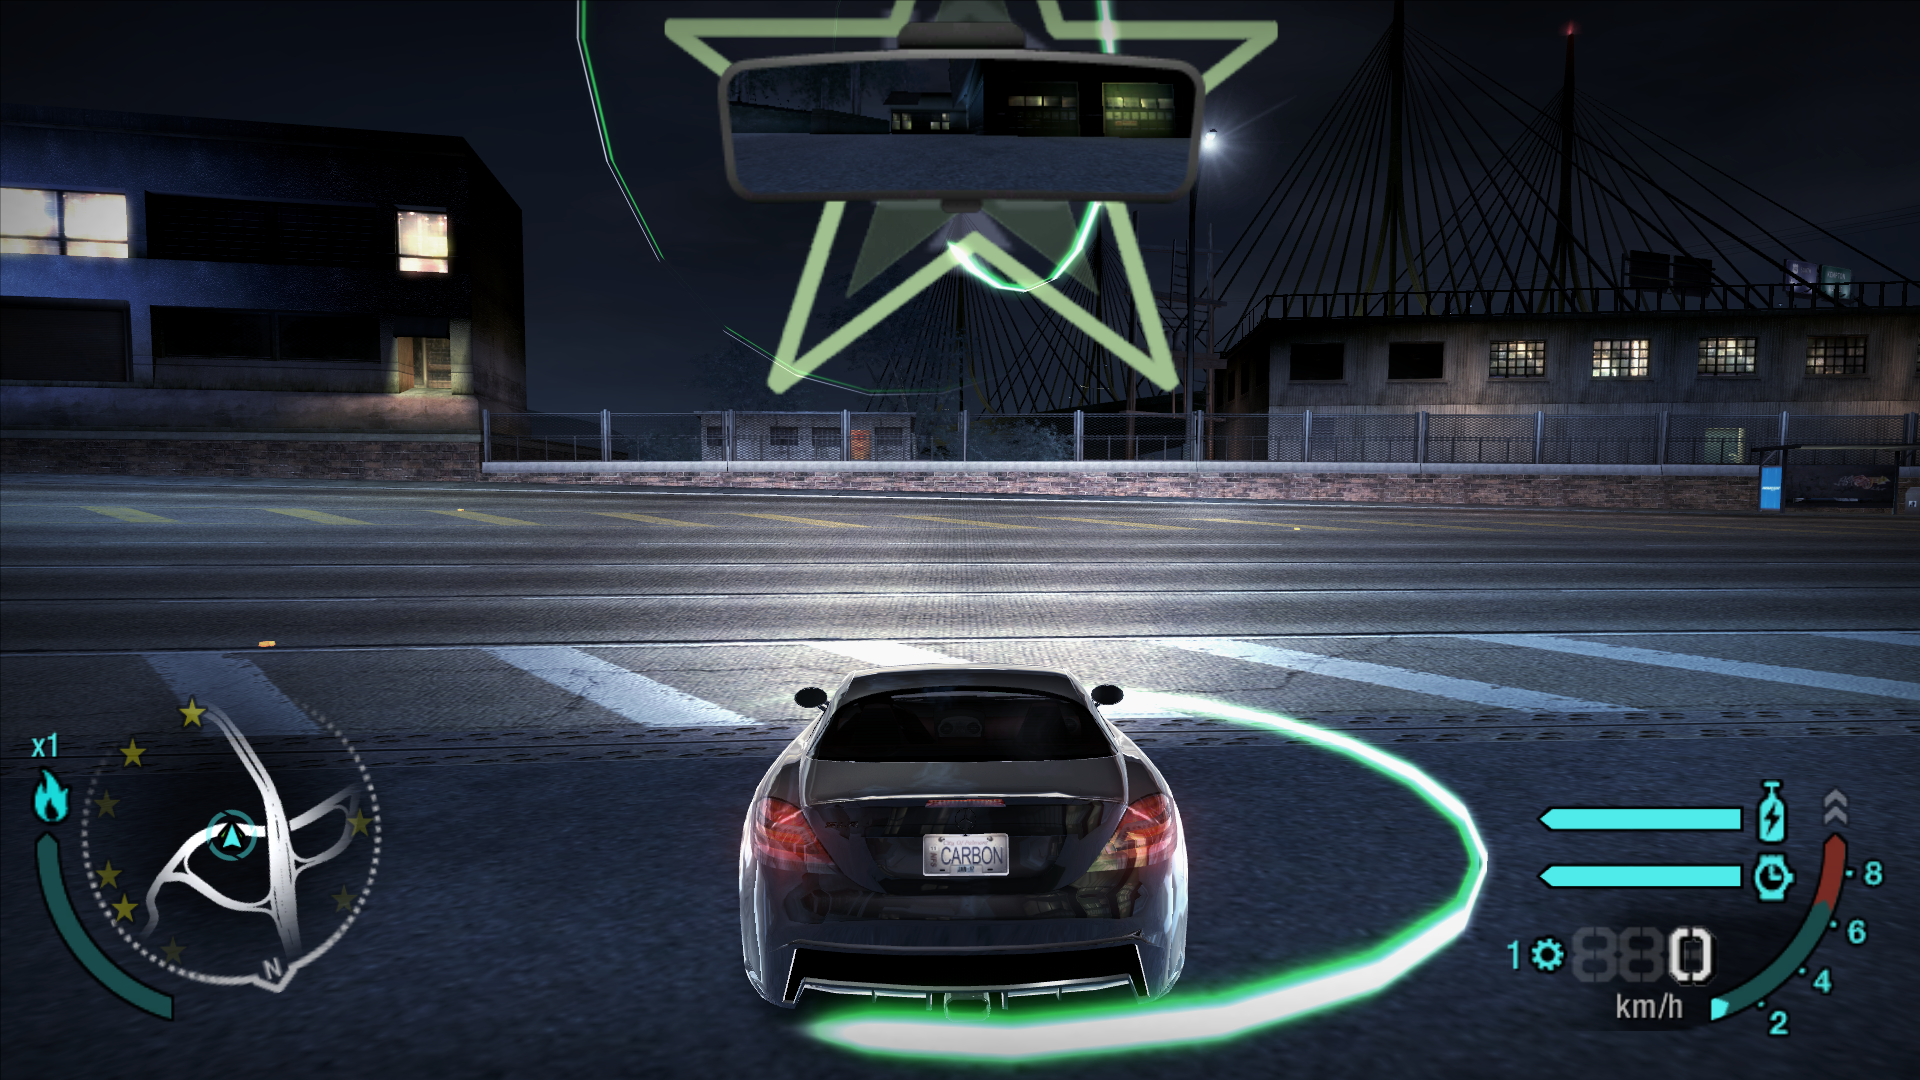 NFS - Need for Speed Carbon - mod Widescreen Fix